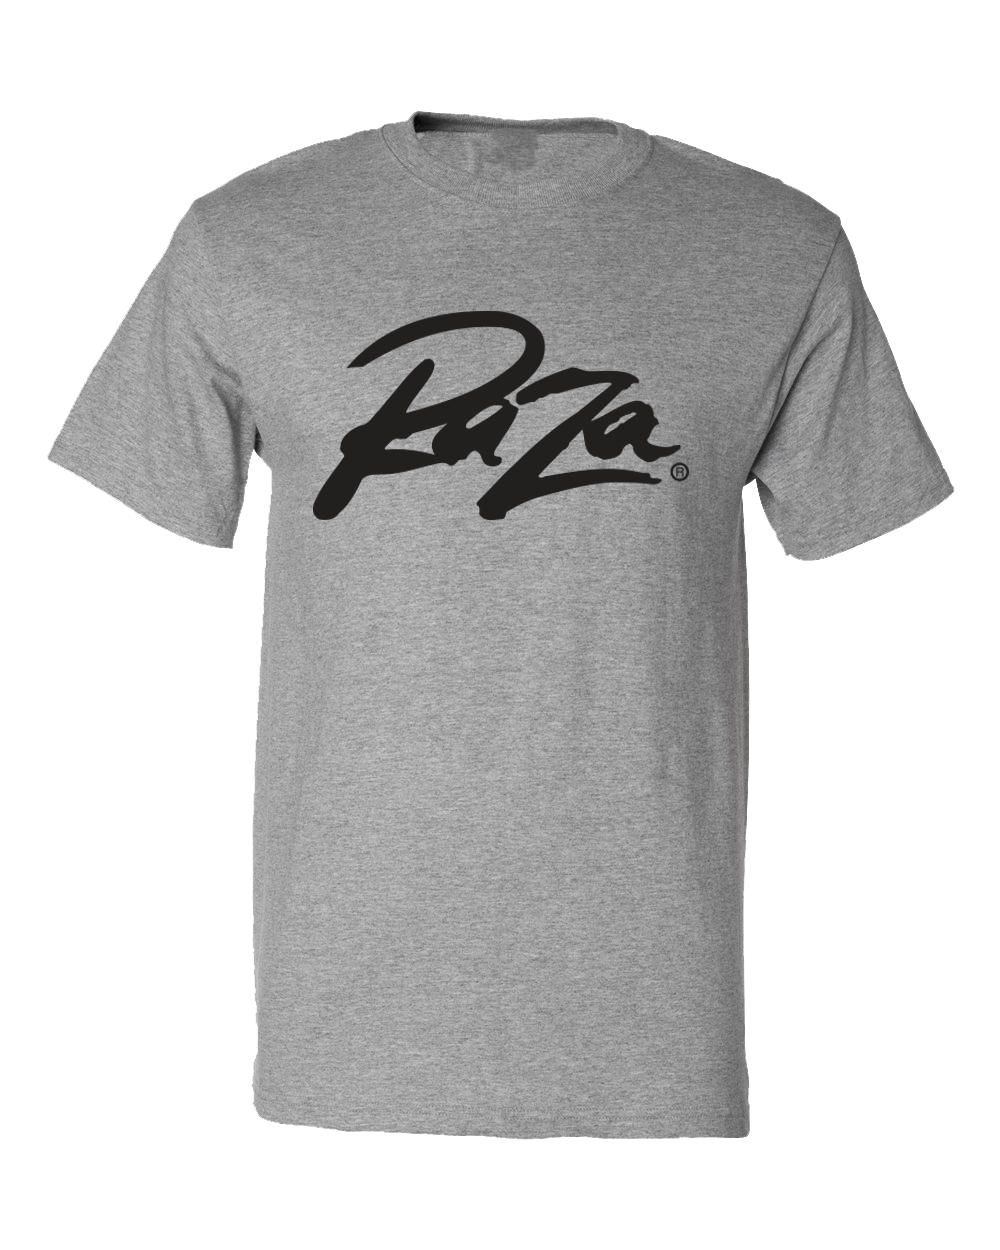 Raza Classic Tee Grey Heather